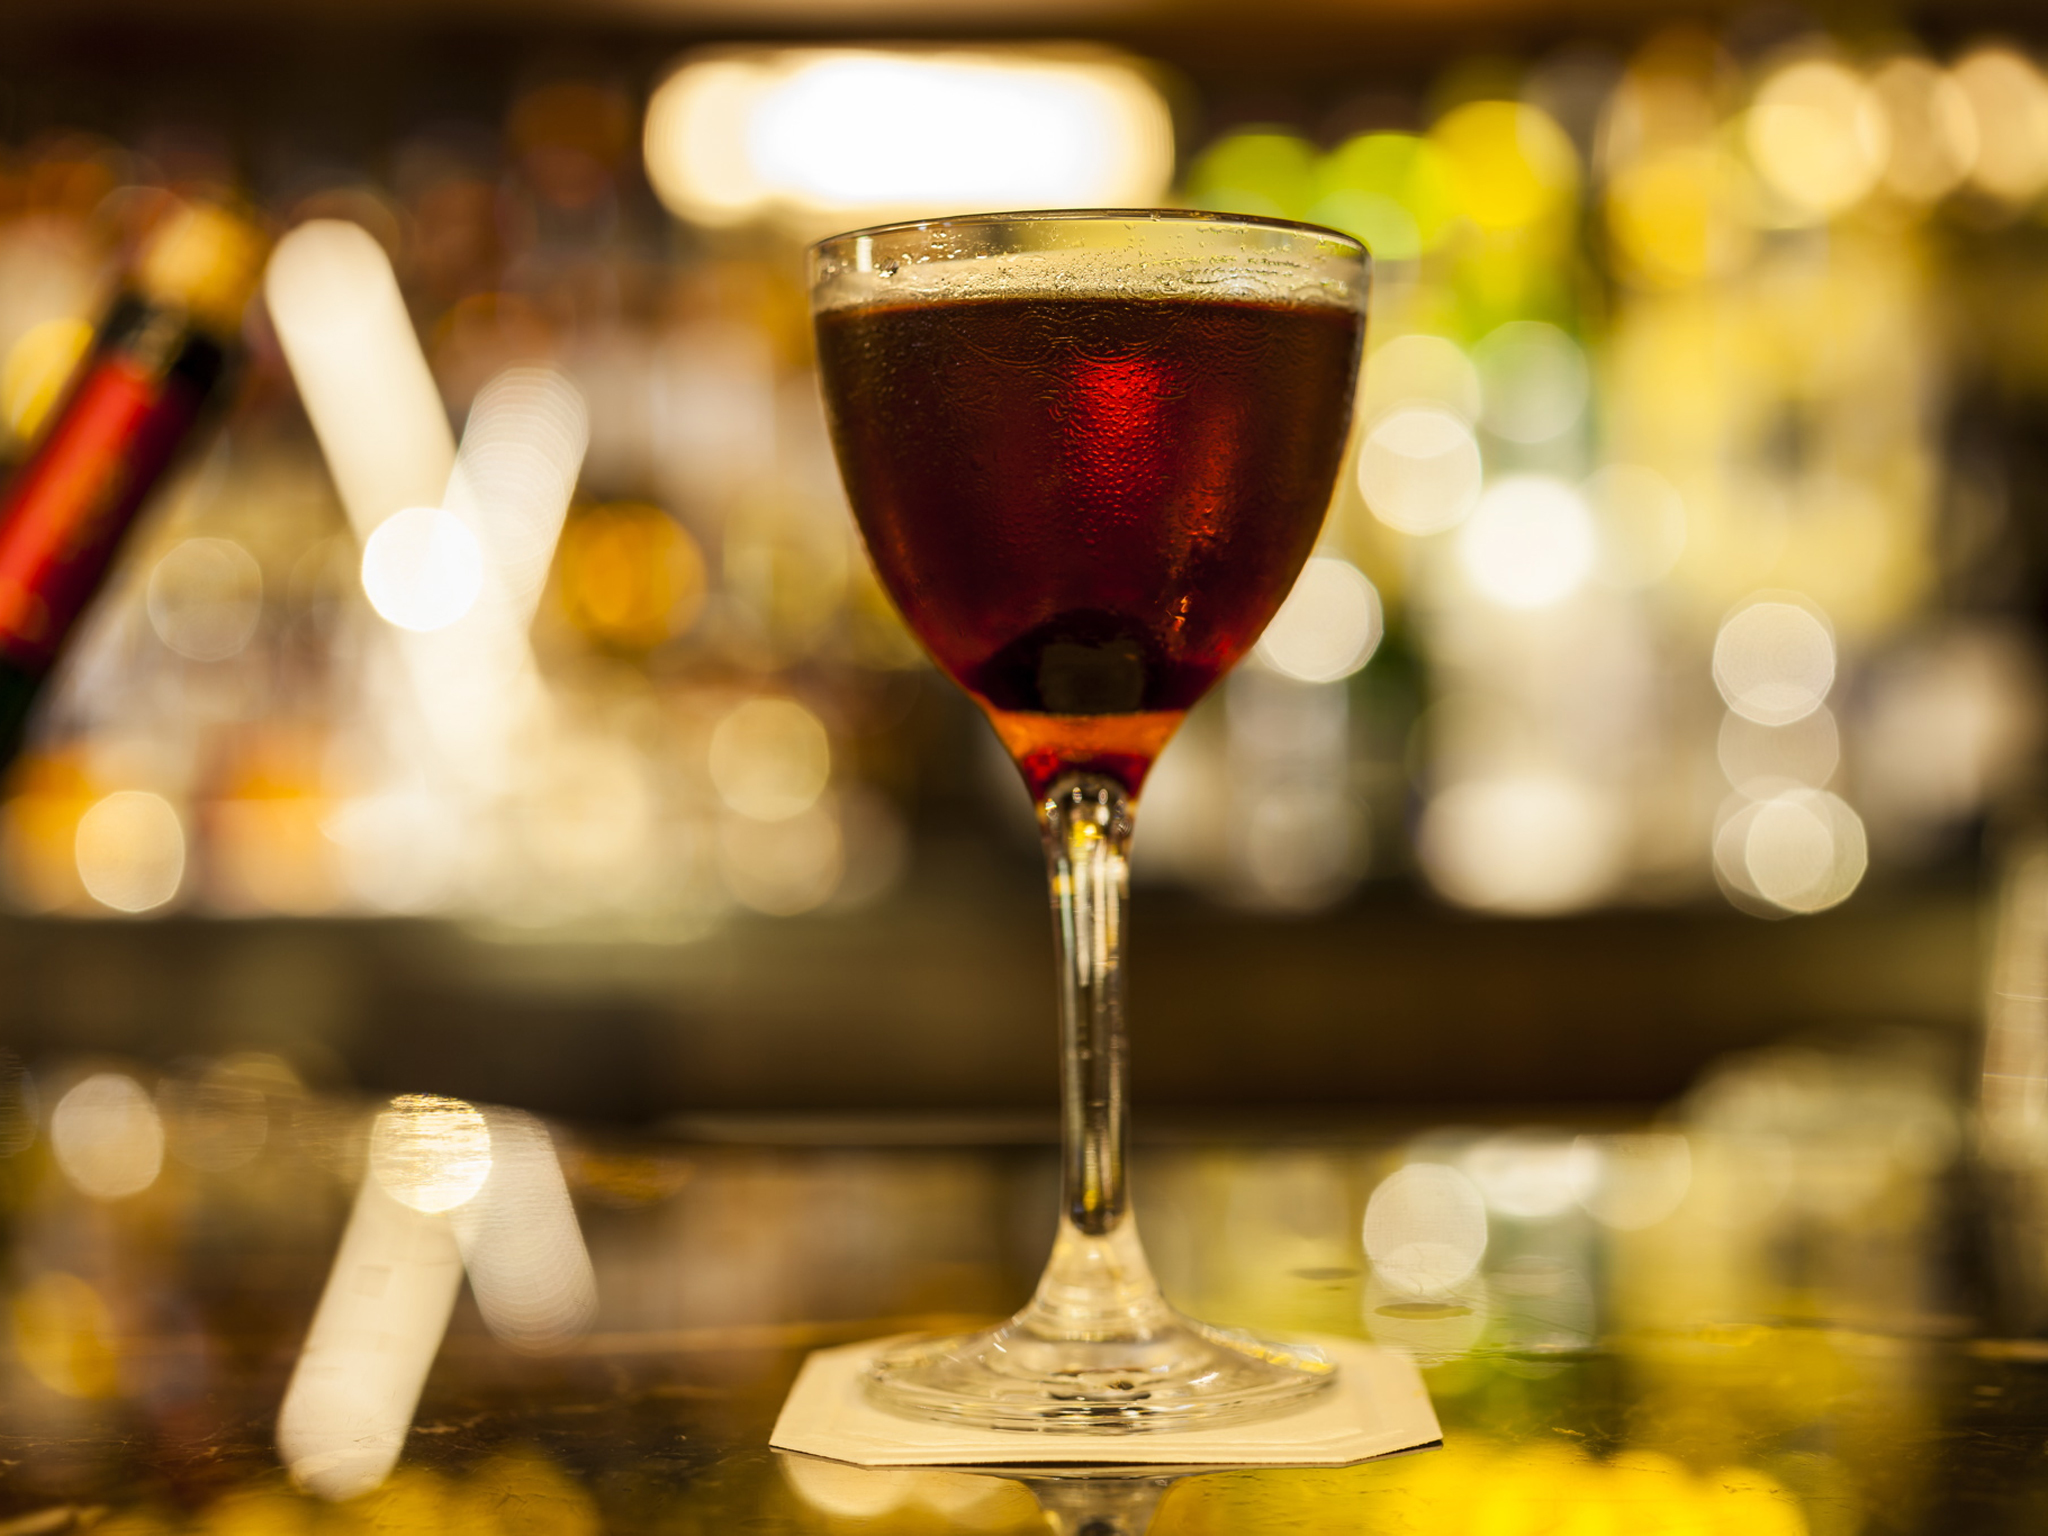 The 100 best bars and pubs in London - American Bar at the Beaumont, Mayfair